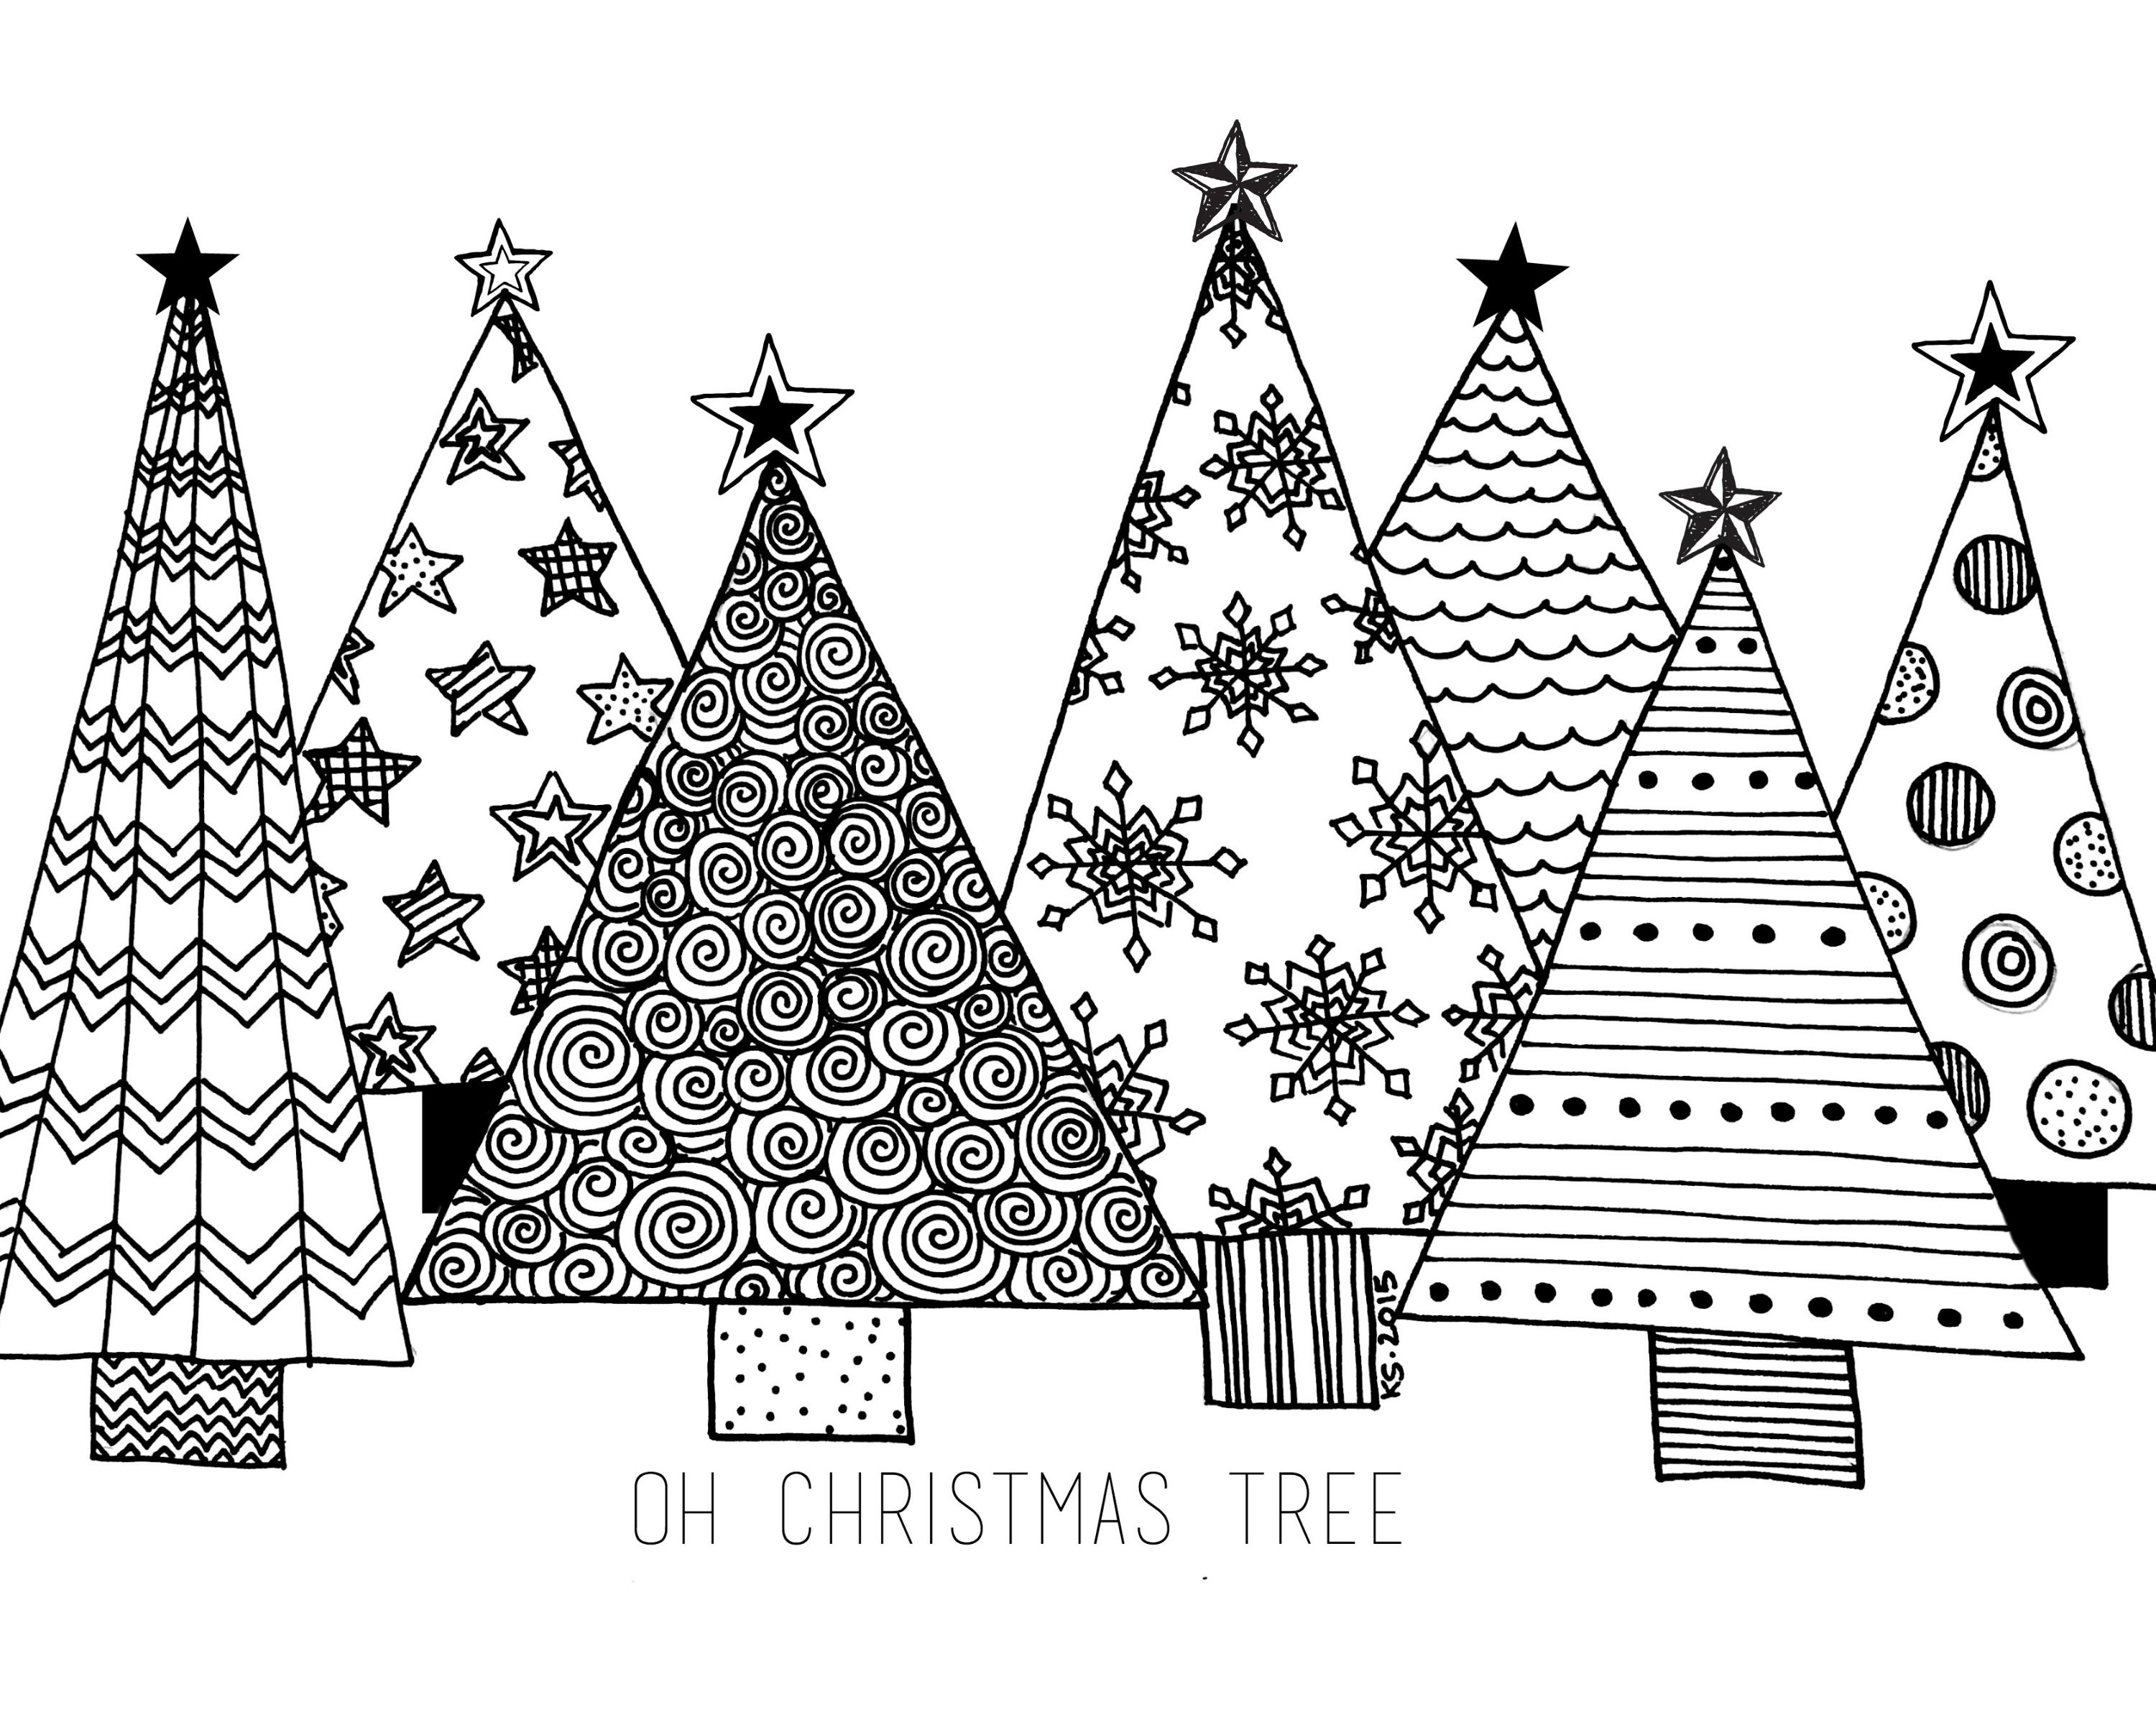 Christmas Tree Coloring Pages | Christmas coloring pages ... | 2400x3000